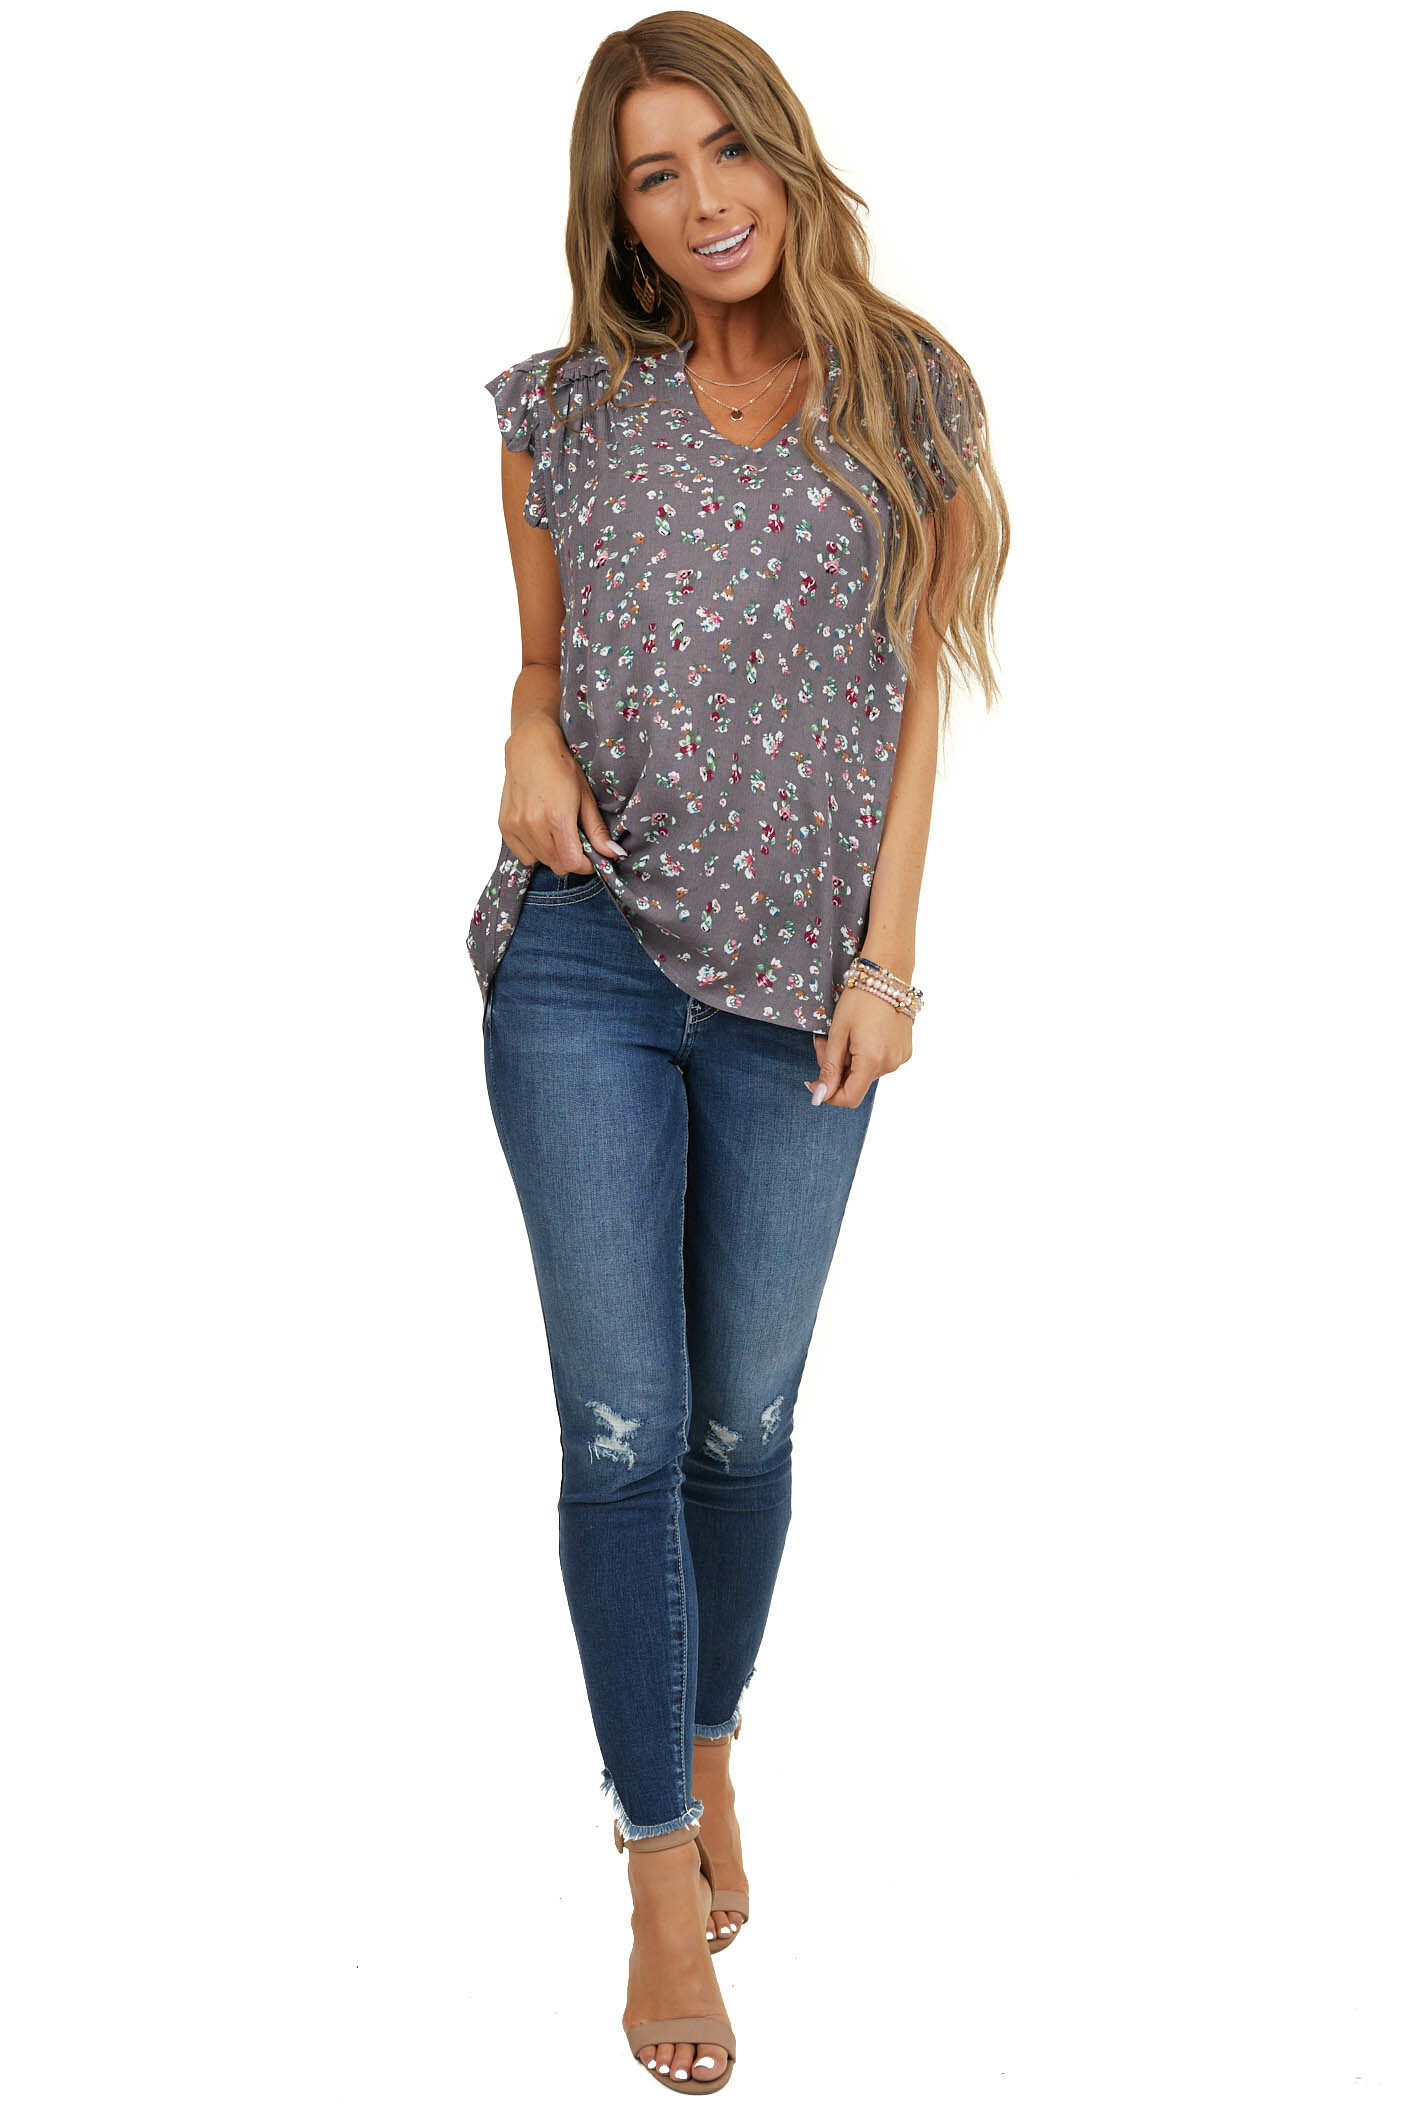 Amethyst Floral Print Blouse with Ruffle Cap Sleeves